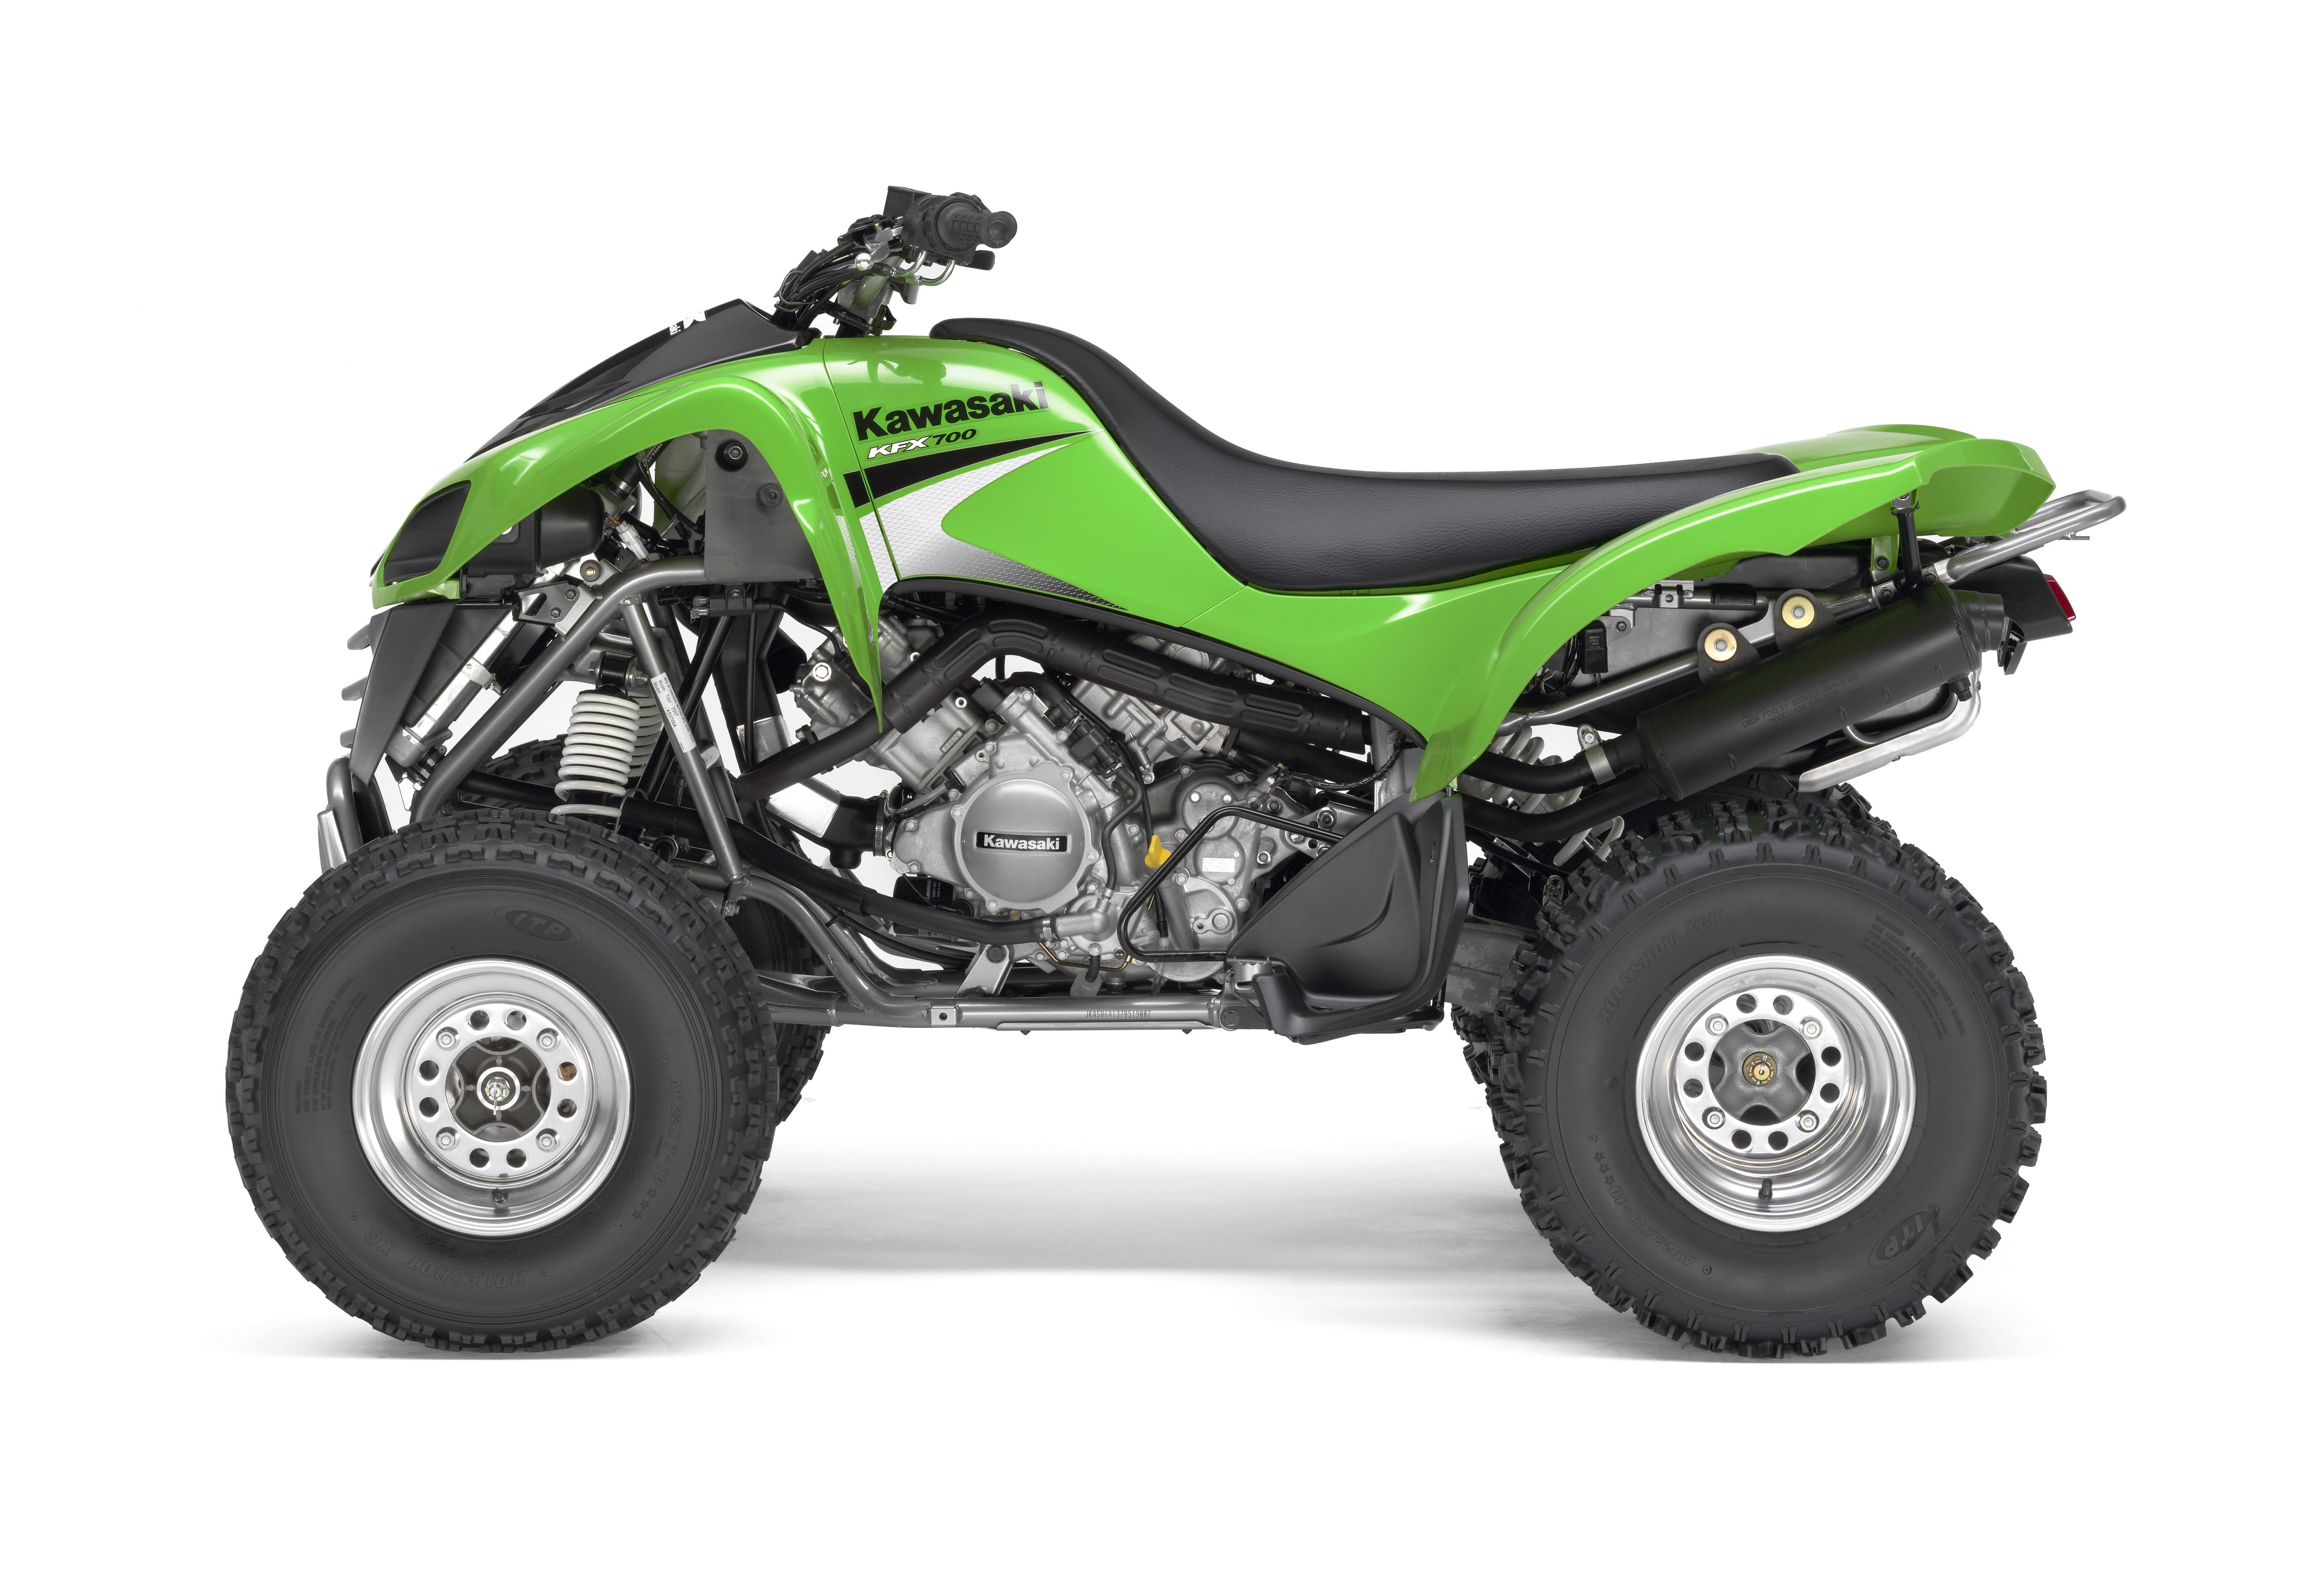 2006 Kawasaki KFX700 | Top Speed. »